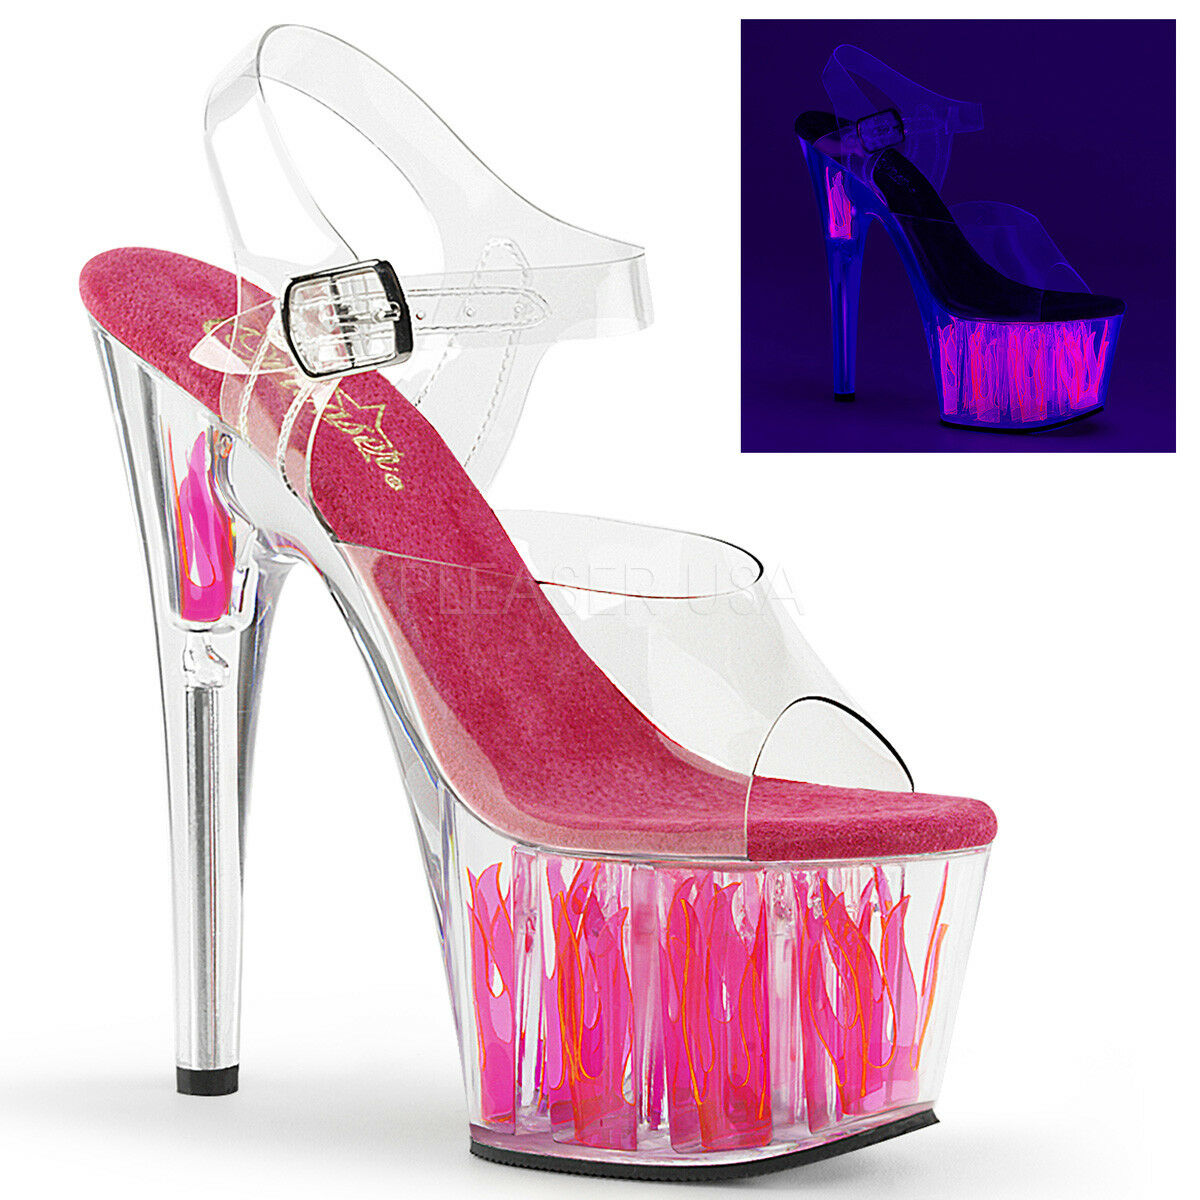 Pleaser ADORE-708FLM UV Rosa Flame Exotic Dancer Stripper Club Slide Sandal Heel